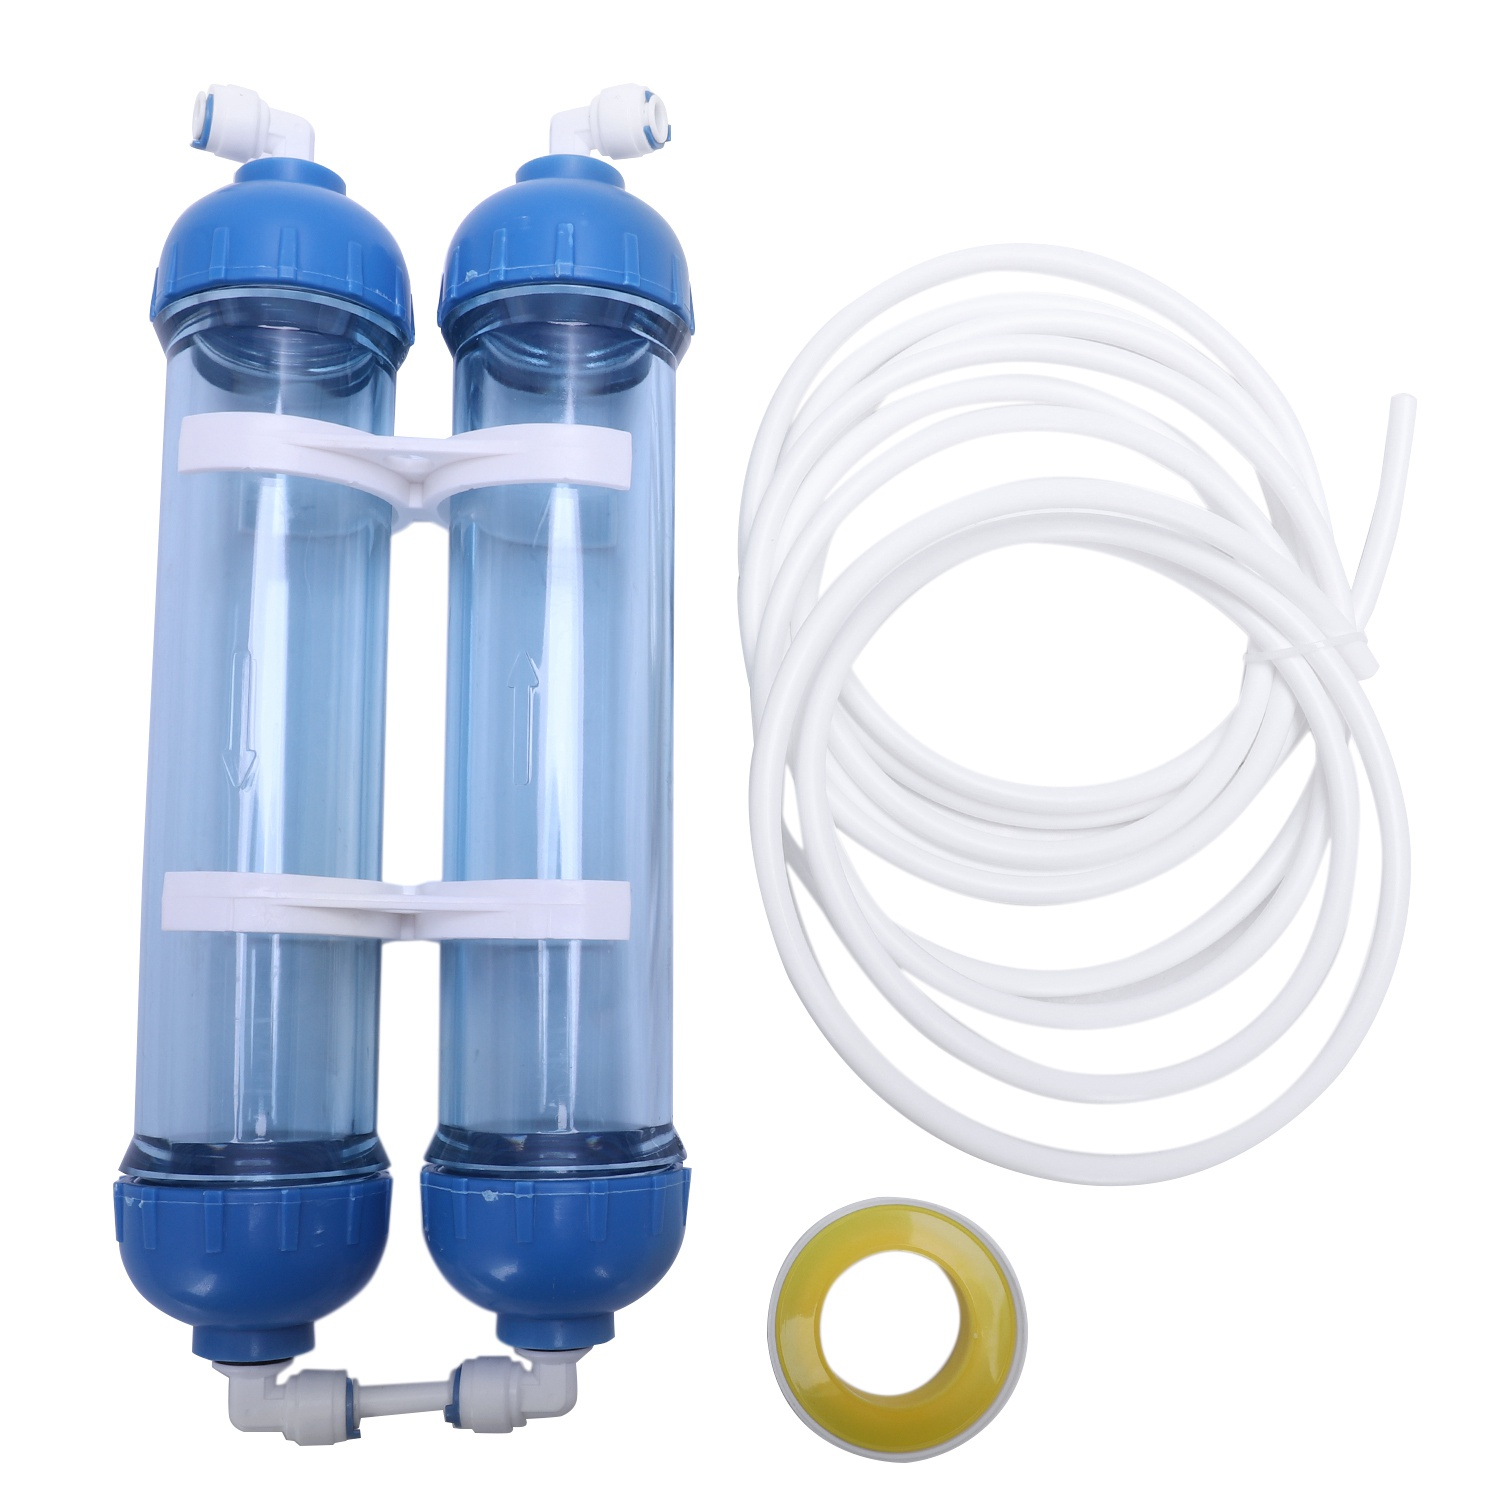 Top Sale Water Filter 2Pcs T33 Cartridge Housing Diy T33 Shell Filter Bottle 4Pcs Fittings Water Purifier For Reverse Osmosis Top Sale Water Filter 2Pcs T33 Cartridge Housing Diy T33 Shell Filter Bottle 4Pcs Fittings Water Purifier For Reverse Osmosis